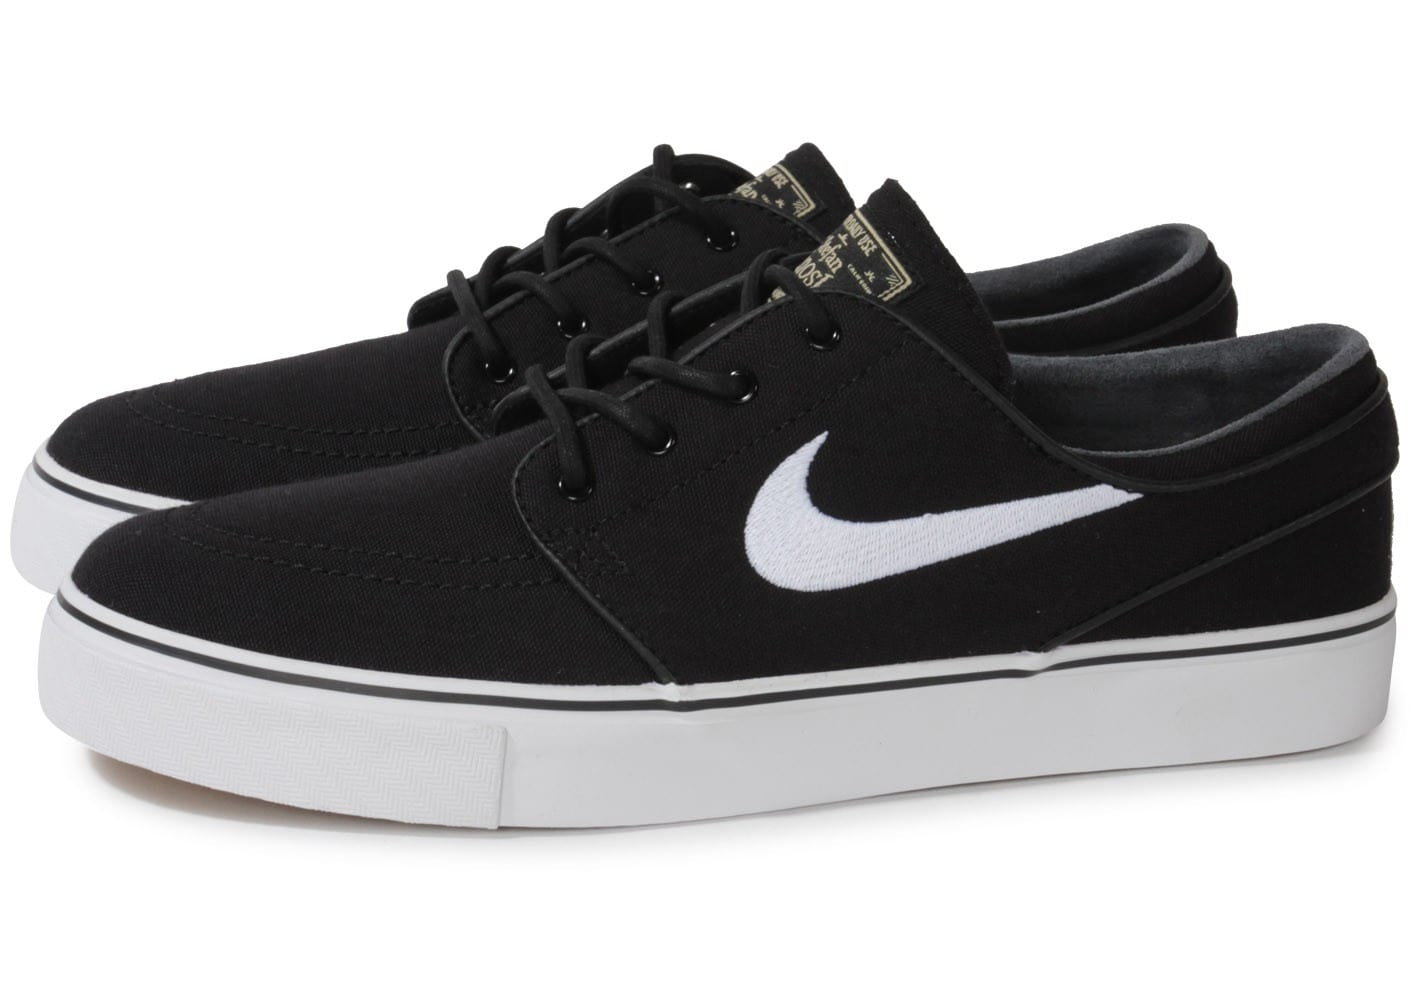 nike zoom stefan janoski noire chaussures homme chausport. Black Bedroom Furniture Sets. Home Design Ideas